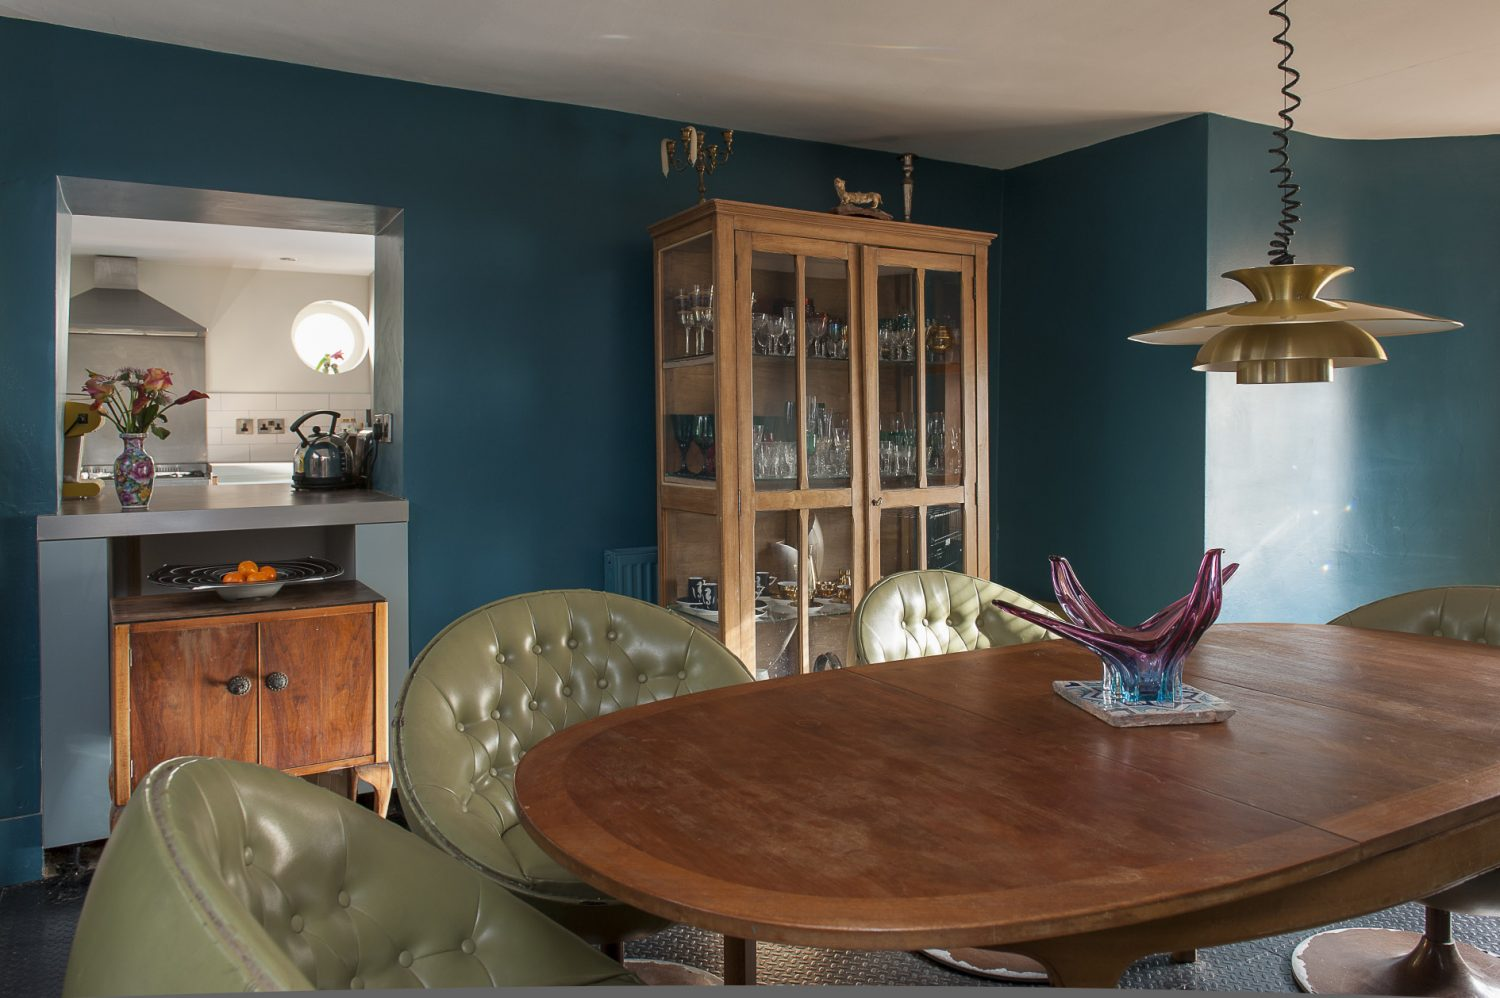 Nadene found the oval 60s teak dining table in a local charity shop and the couple have surrounded it with deep, green leather nightclub swivel chairs from eBay. A French glass-fronted and sided linen cabinet displays Nadene's eclectic collection of glassware